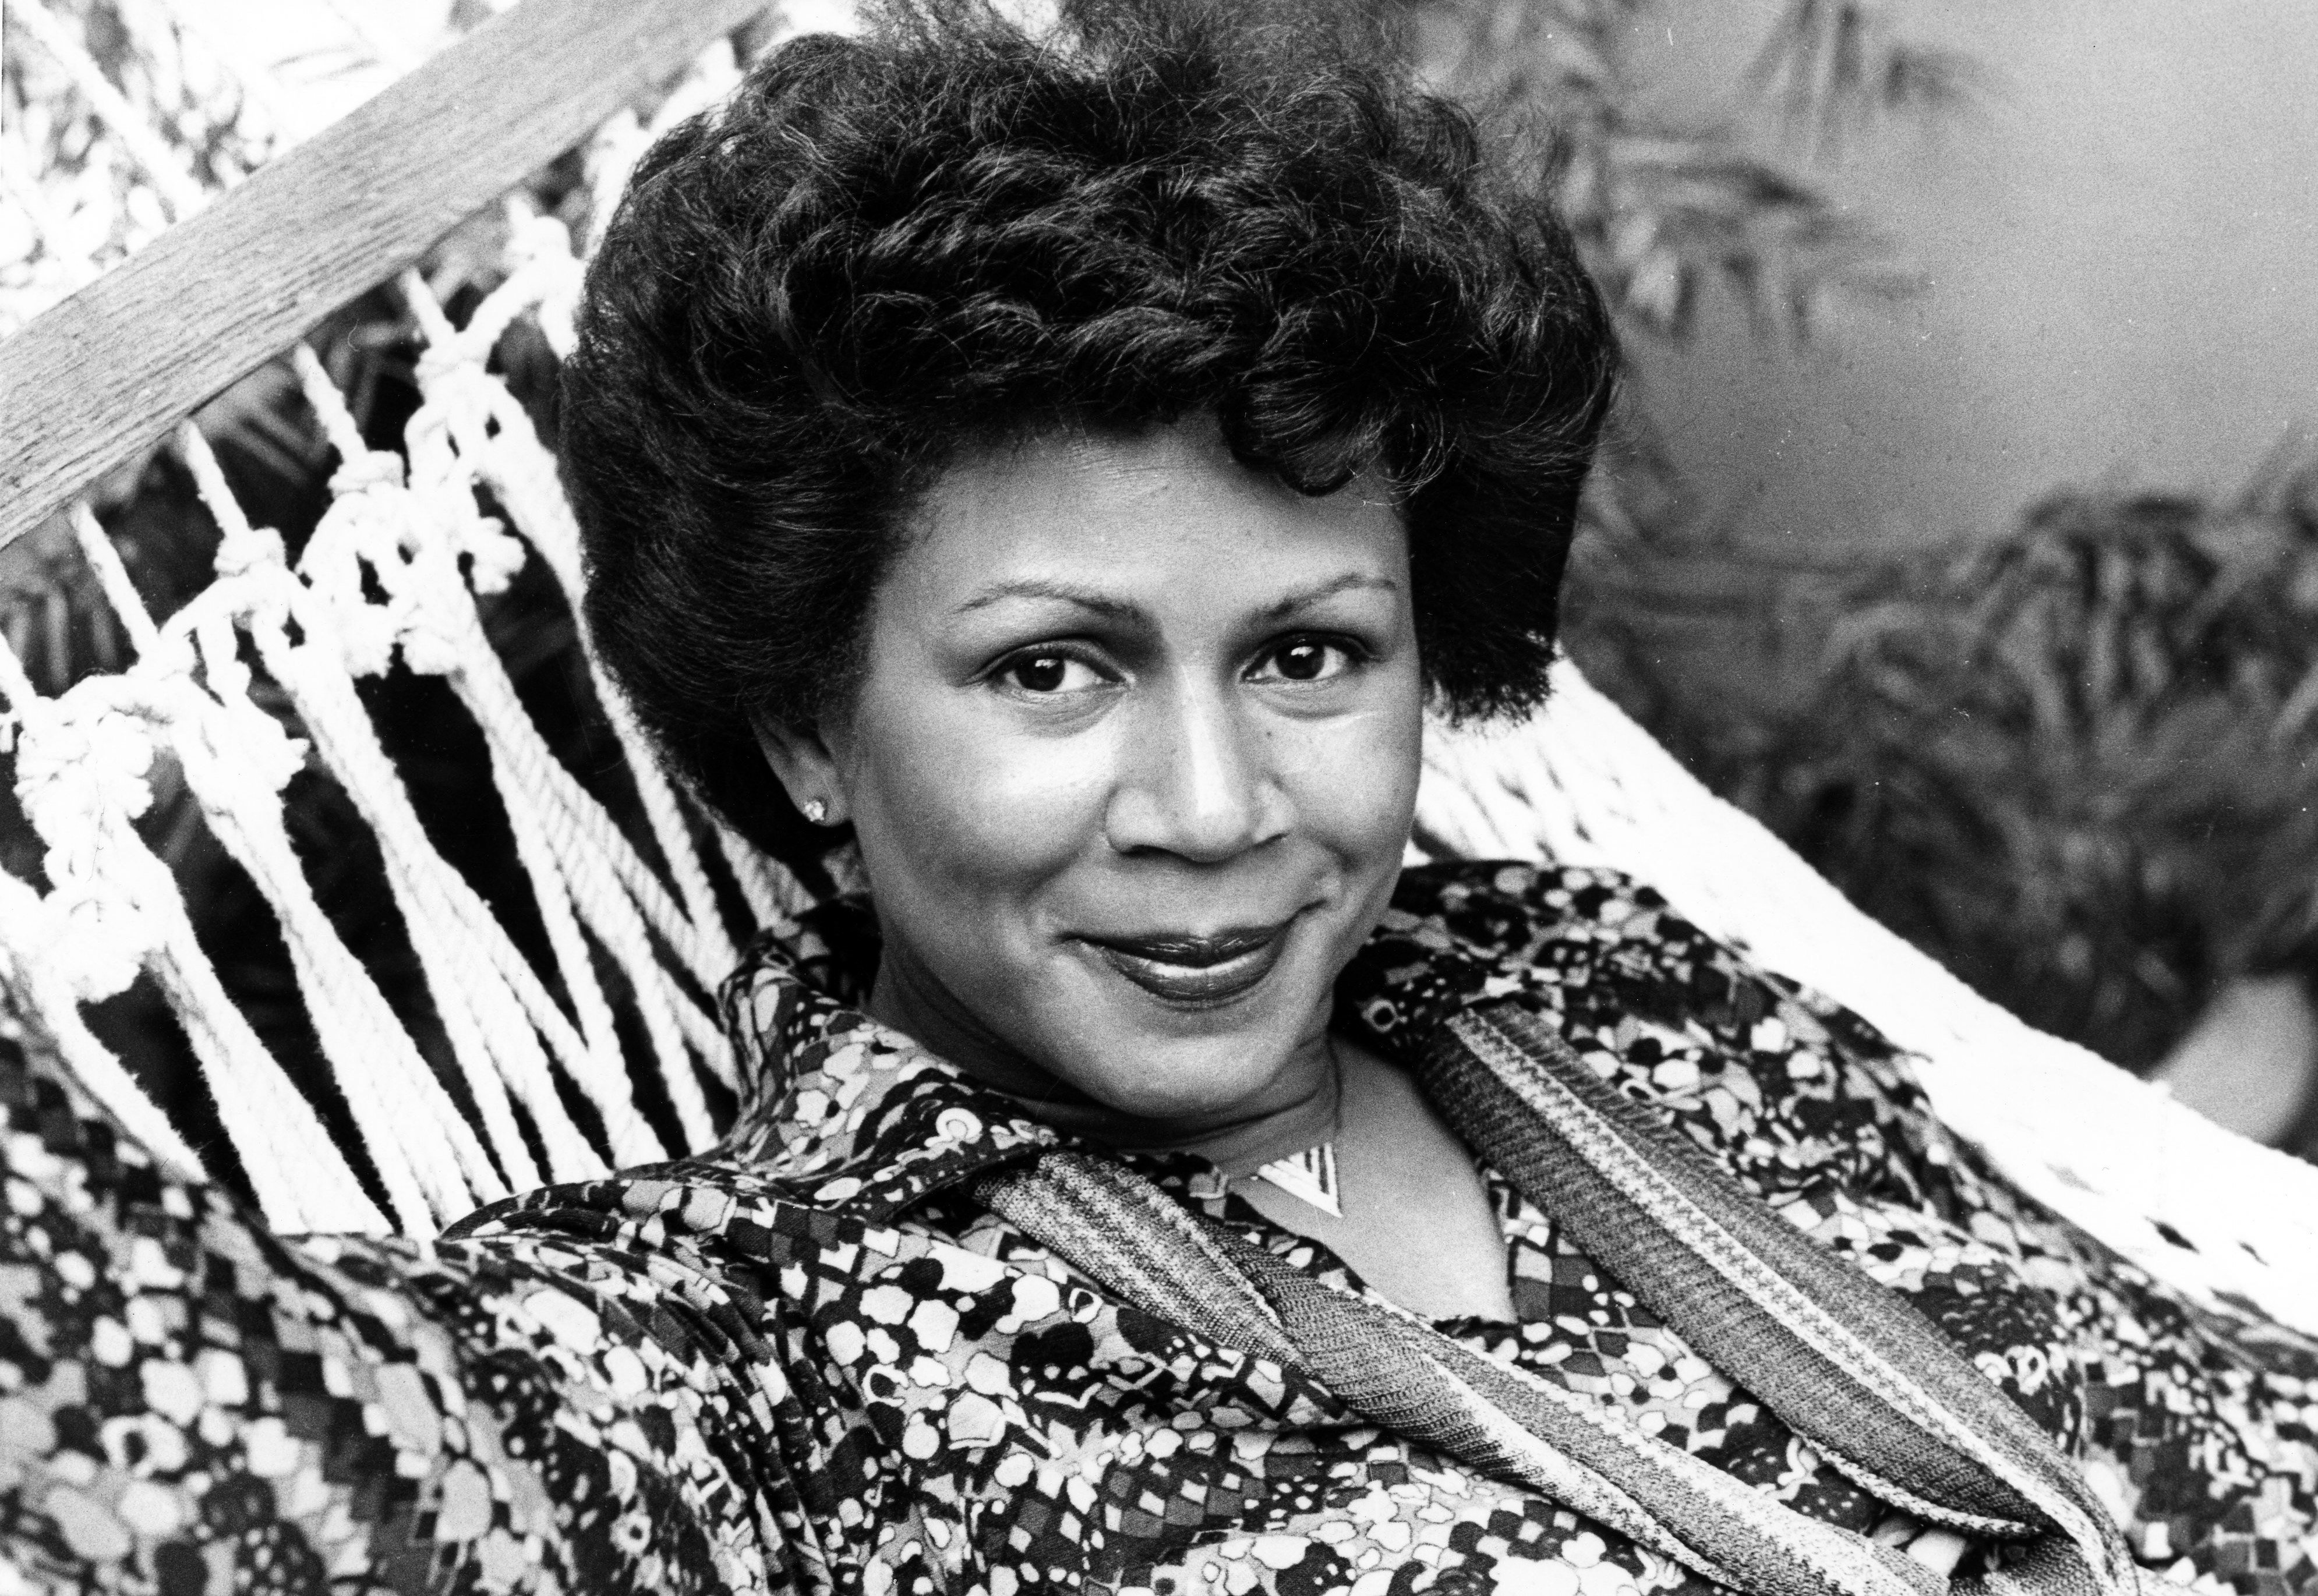 R&B singer Minnie Riperton poses for a portrait on October 20, 1977.   Photo: Getty Images